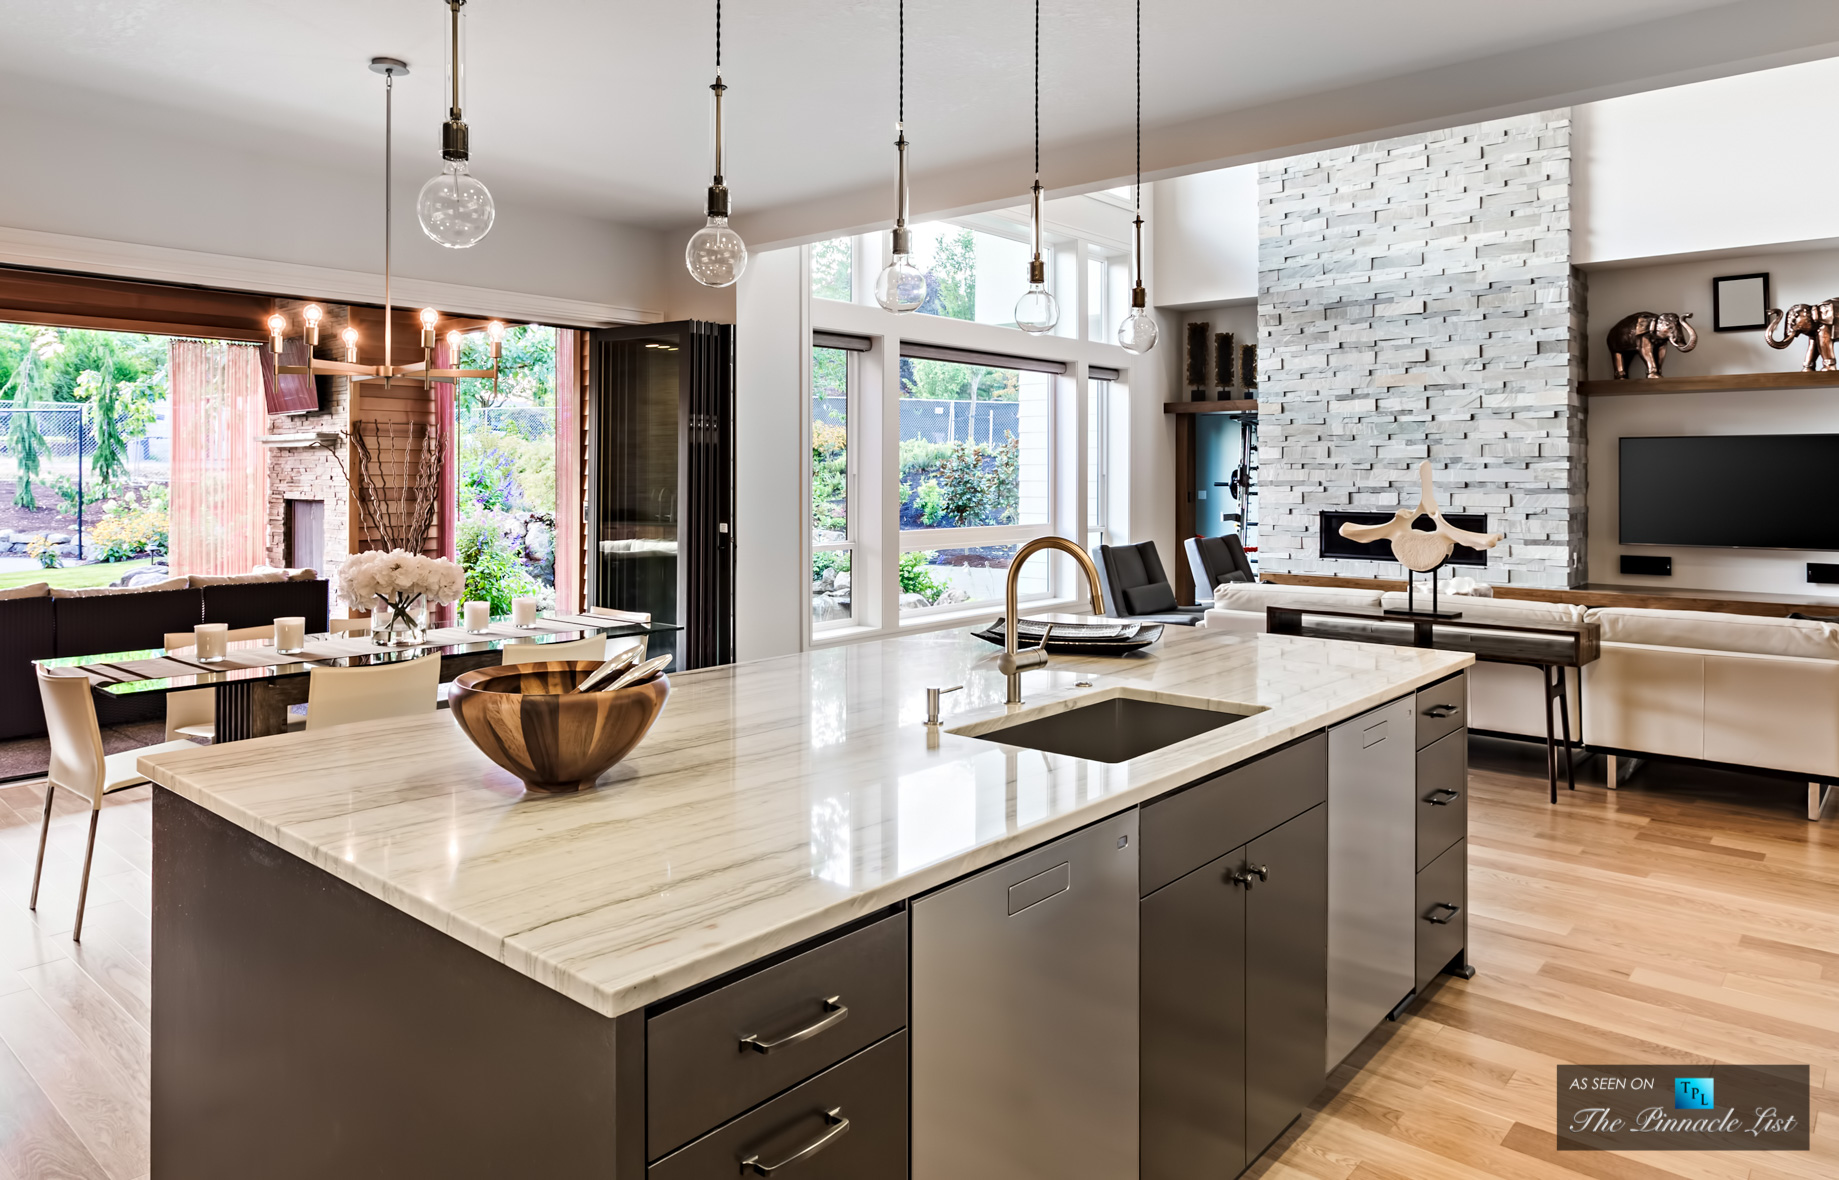 Choose Between Low Voltages vs. Line Voltage Pendants - How To Modernize Your Home For Selling with Kitchen Pendant Lights